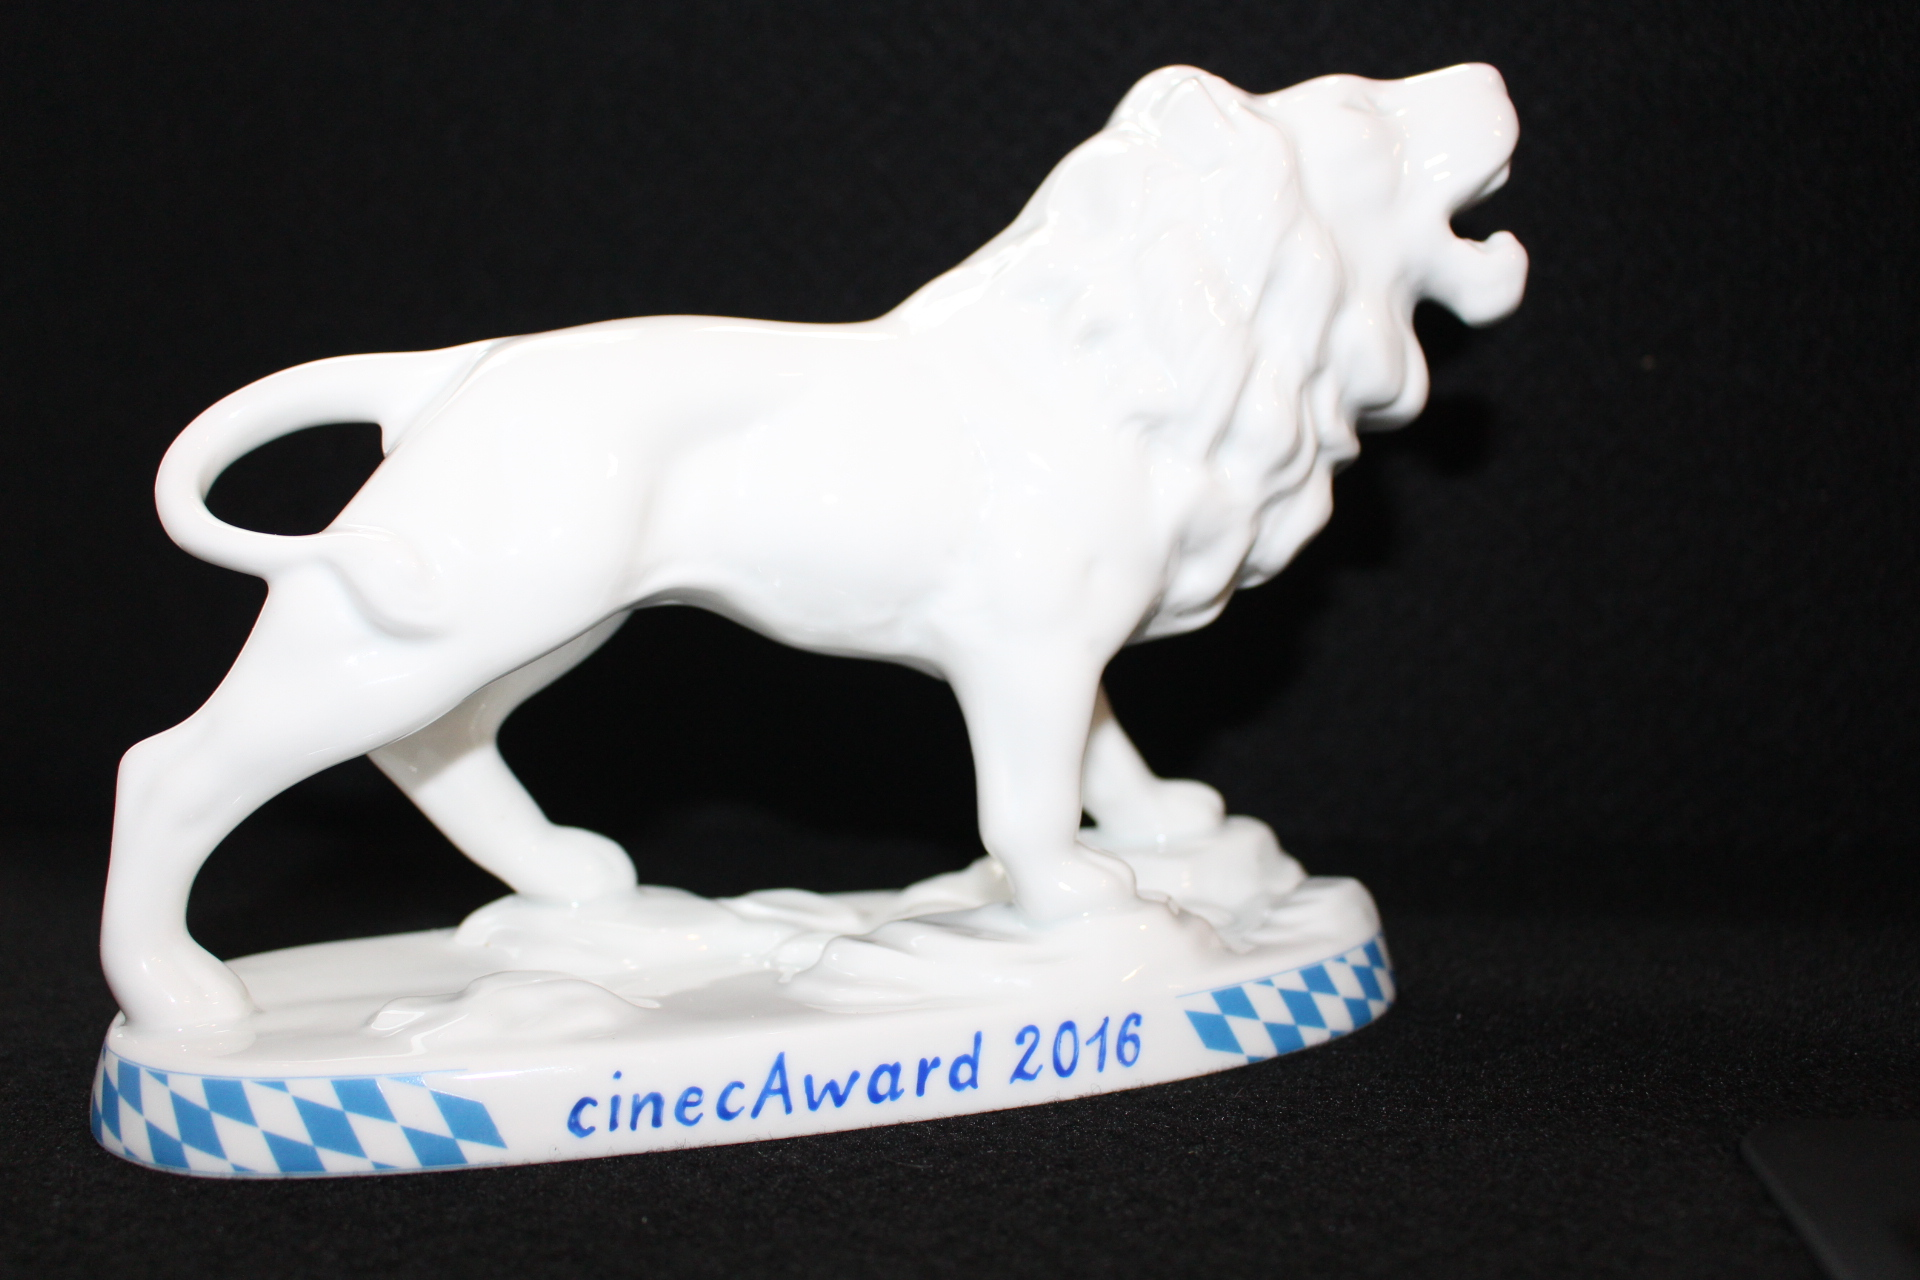 CinecAward_Löwe